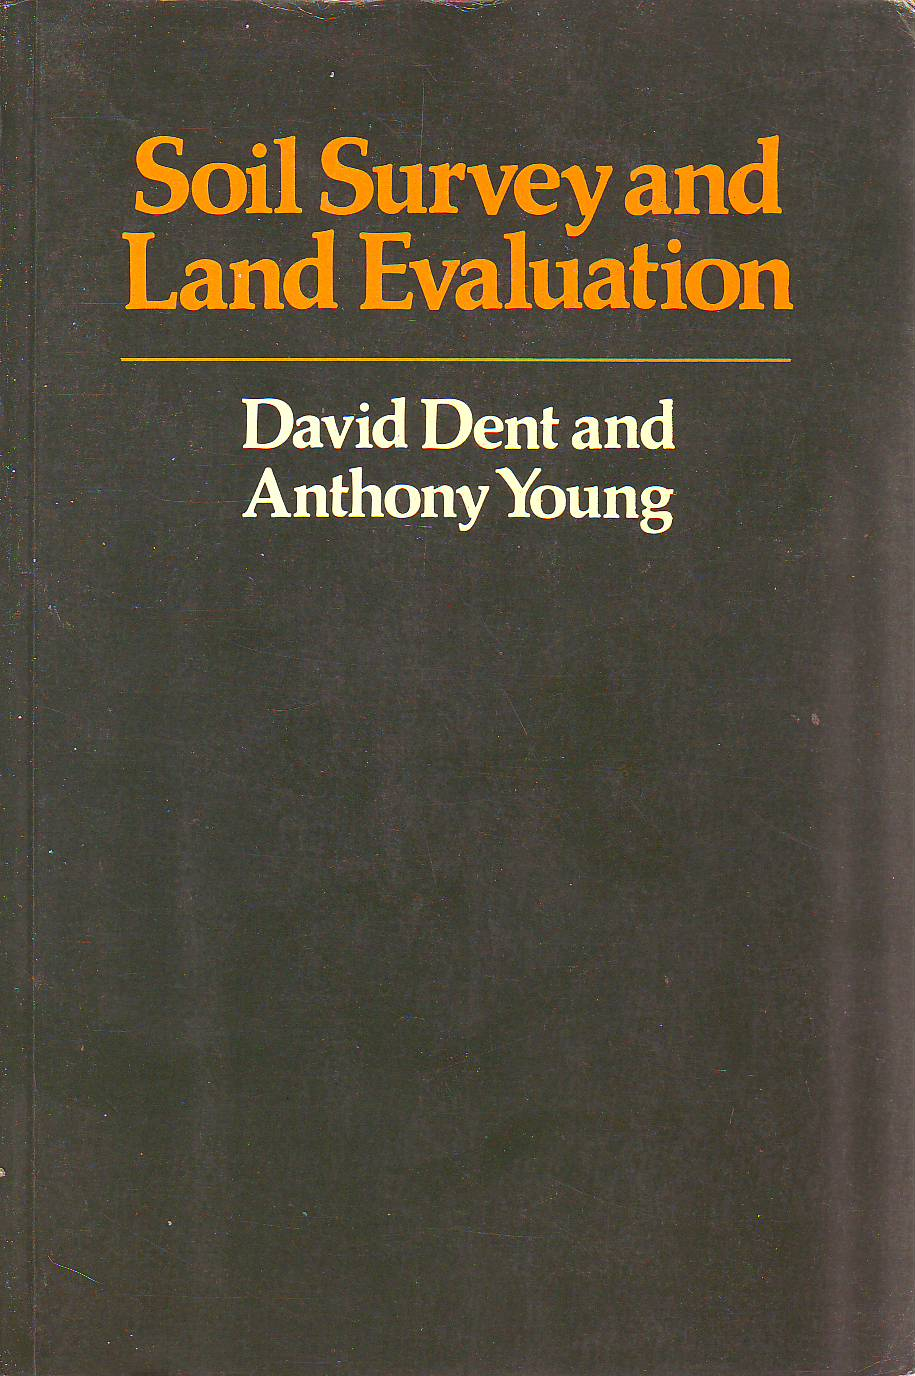 Soil Survey and Land Evaluation